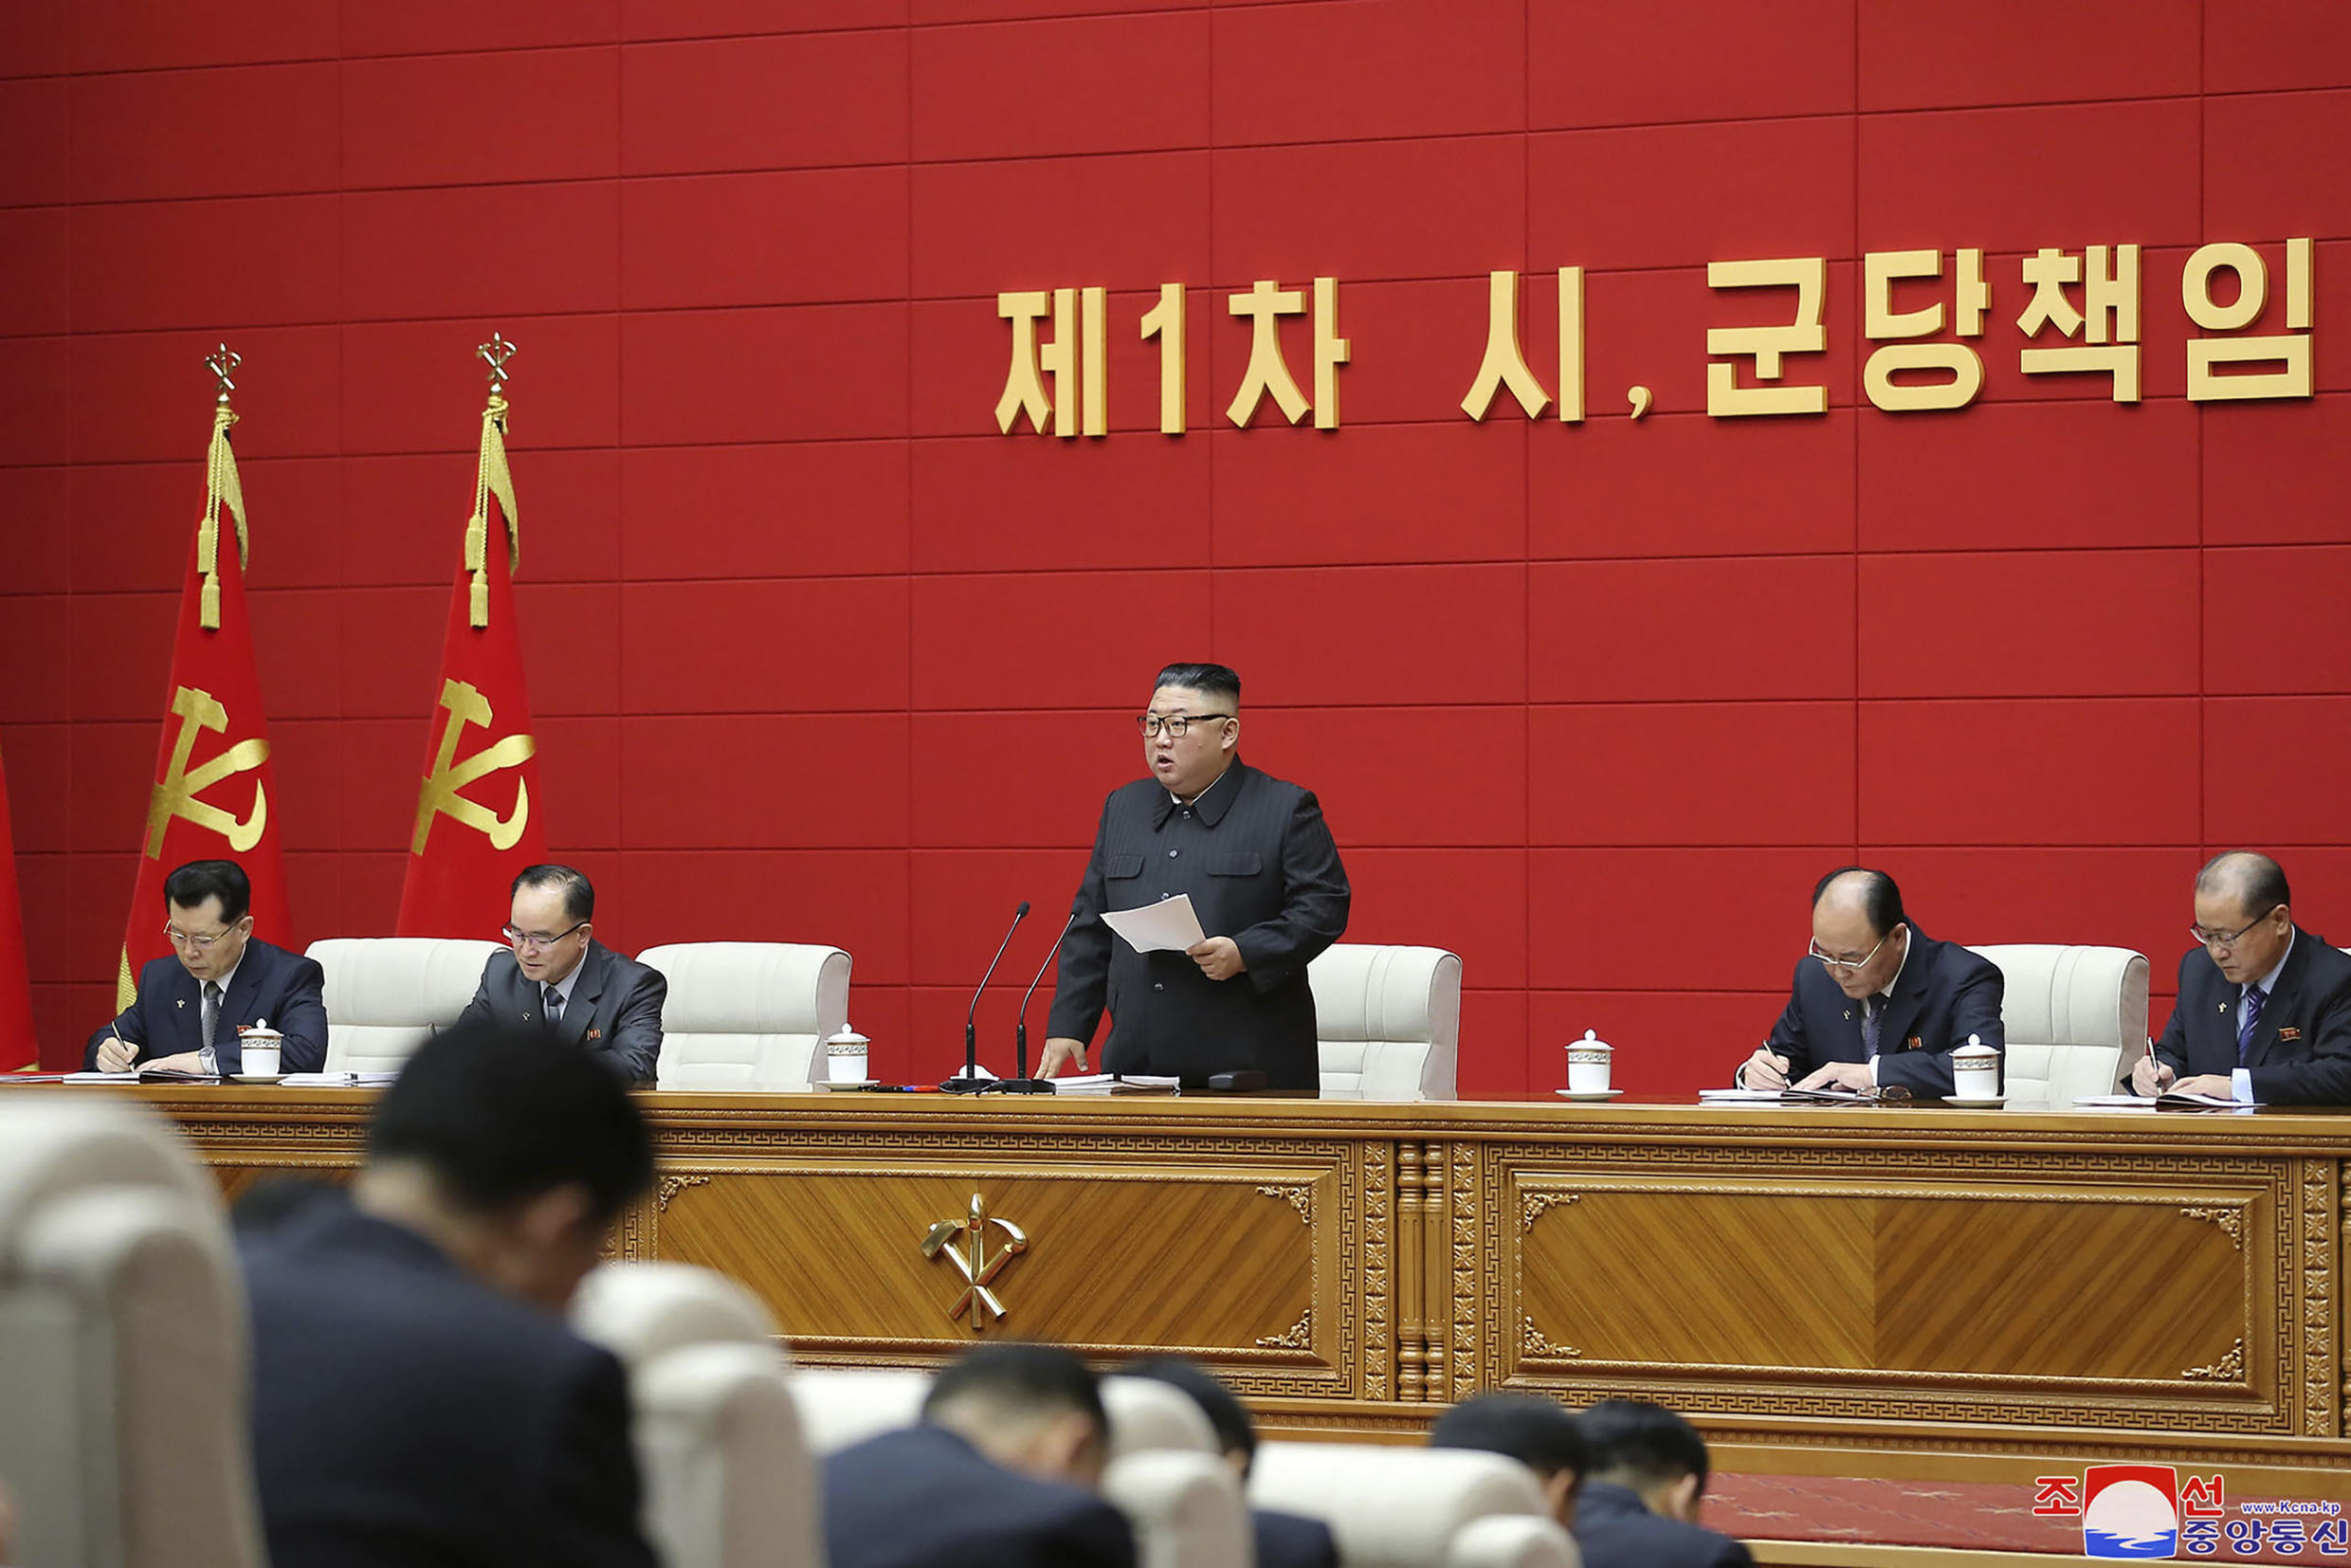 """In this photo provided by the North Korean government, North Korean leader Kim Jong Un, center, delivers a speech during a workshop of chief secretaries of city and county committees of the ruling Workers' Party in Pyongyang, North Korea, Wednesday, March 3, 2021. North Korea may be taking steps to extract plutonium to manufacture more nuclear weapons at its main atomic complex, recent satellite photos indicated, weeks after Kim vowed to expand his nuclear arsenal to cope with what he called U.S. hostility. Independent journalists were not given access to cover the event depicted in this image distributed by the North Korean government. The content of this image is as provided and cannot be independently verified. Korean language watermark on image as provided by source reads: """"KCNA"""" which is the abbreviation for Korean Central News Agency. (Korean Central News Agency/Korea News Service via AP)"""